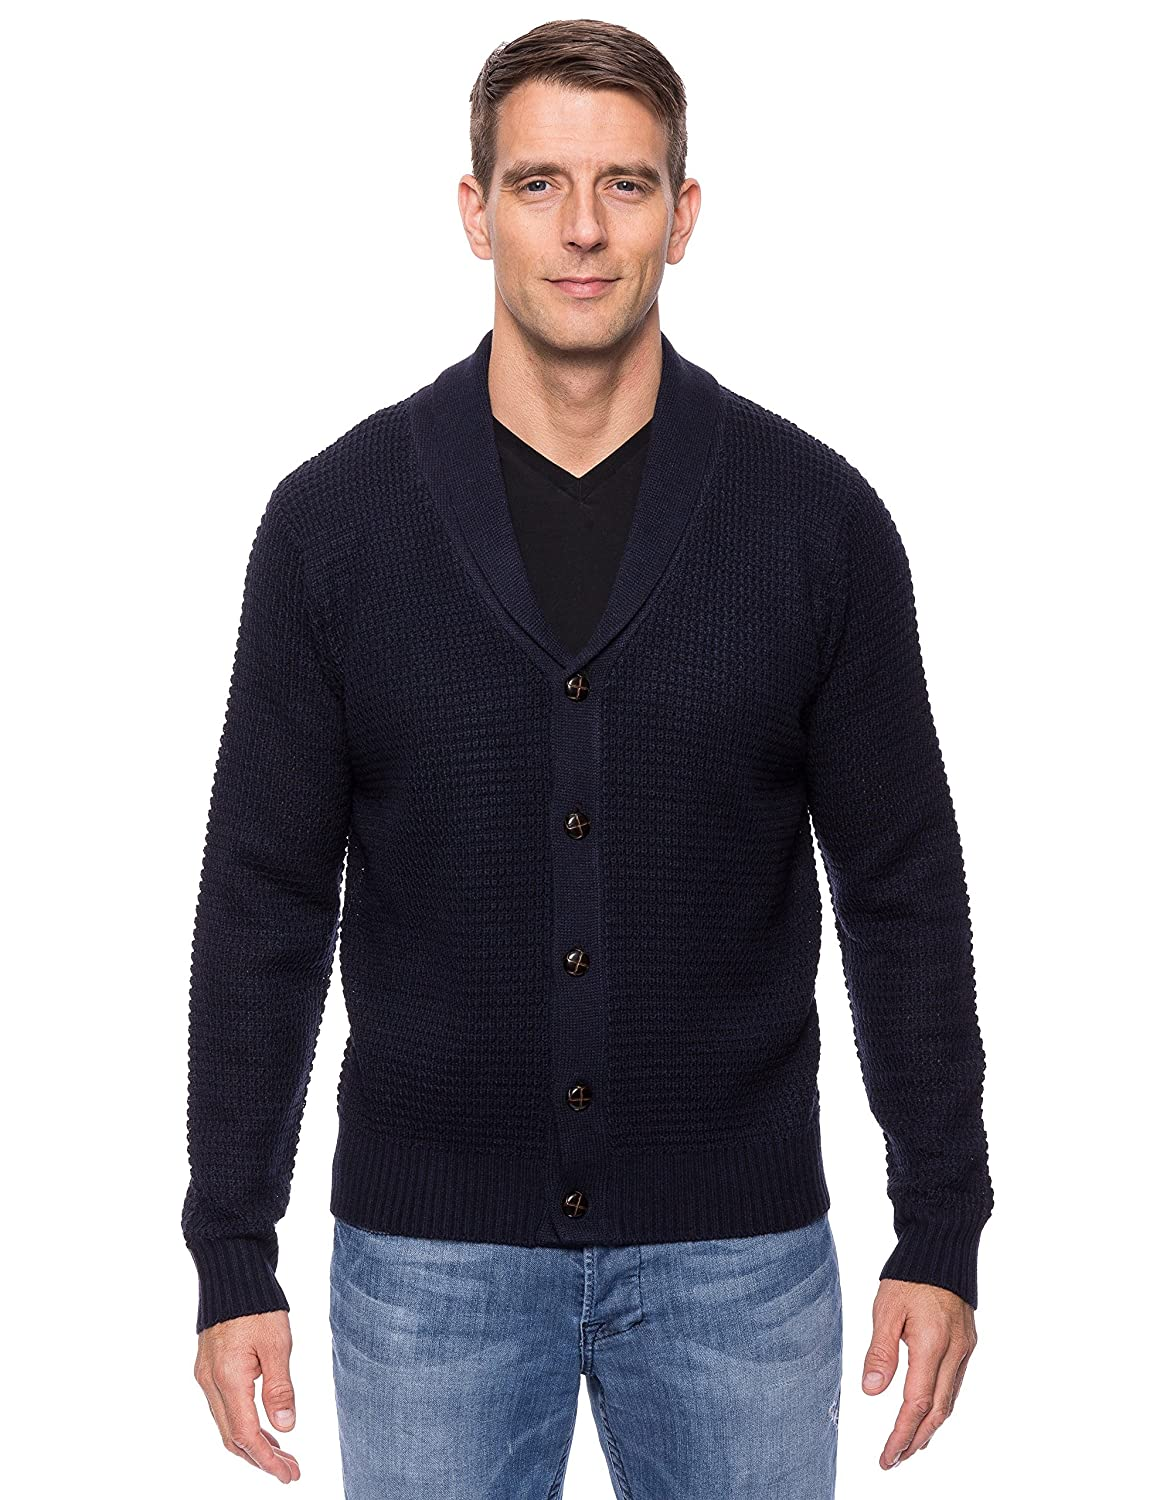 Tocco Reale Men's Wool Blend Shawl Collar Cardigan in Waffle Stitch tcr_mn_sw_wlpynl5_crdshnk